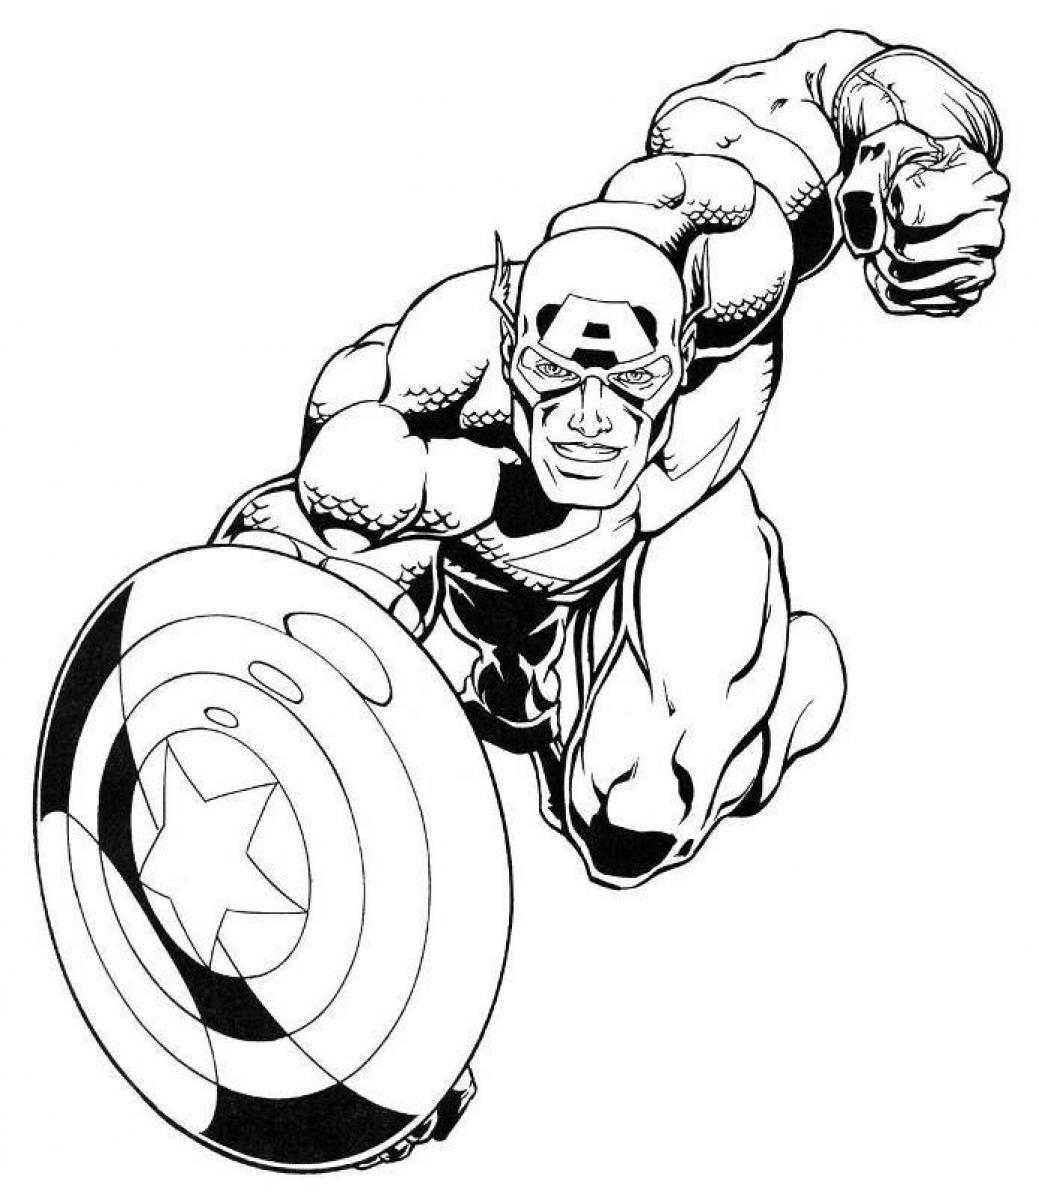 captain america coloring pages - printable captain america coloring pages